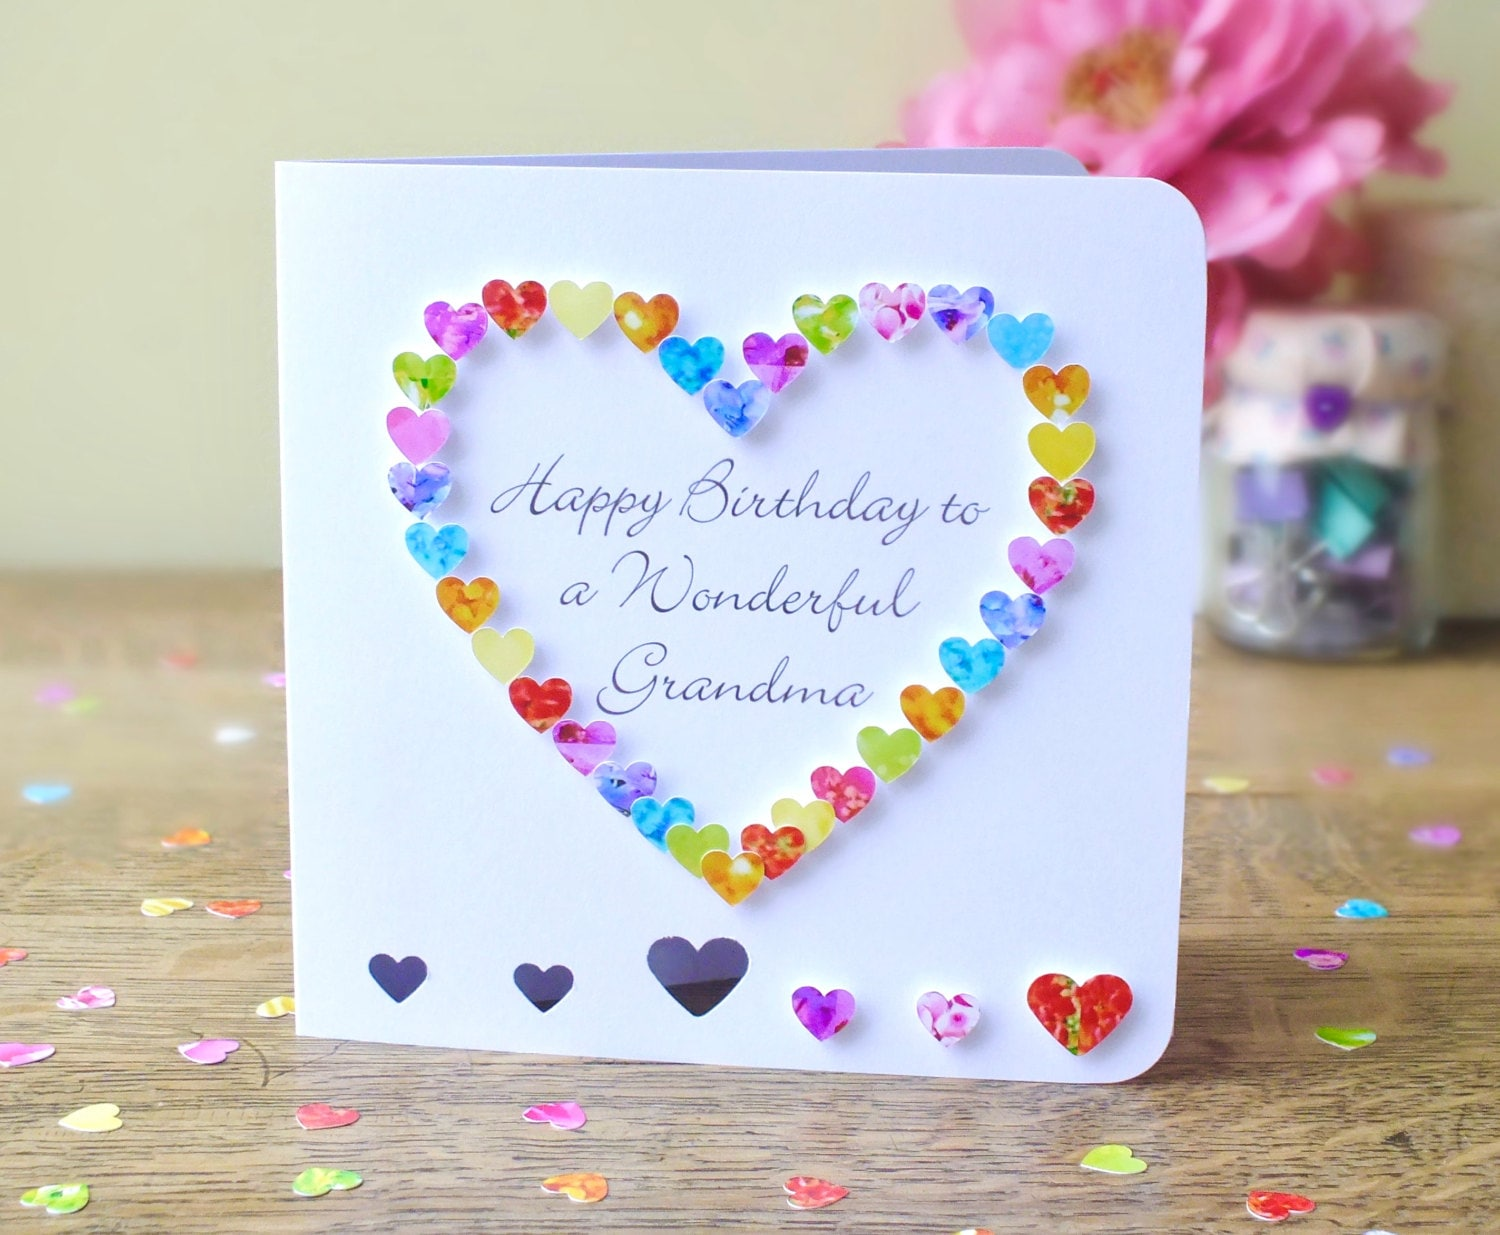 Grandma birthday card handmade personalised birthday card zoom bookmarktalkfo Image collections